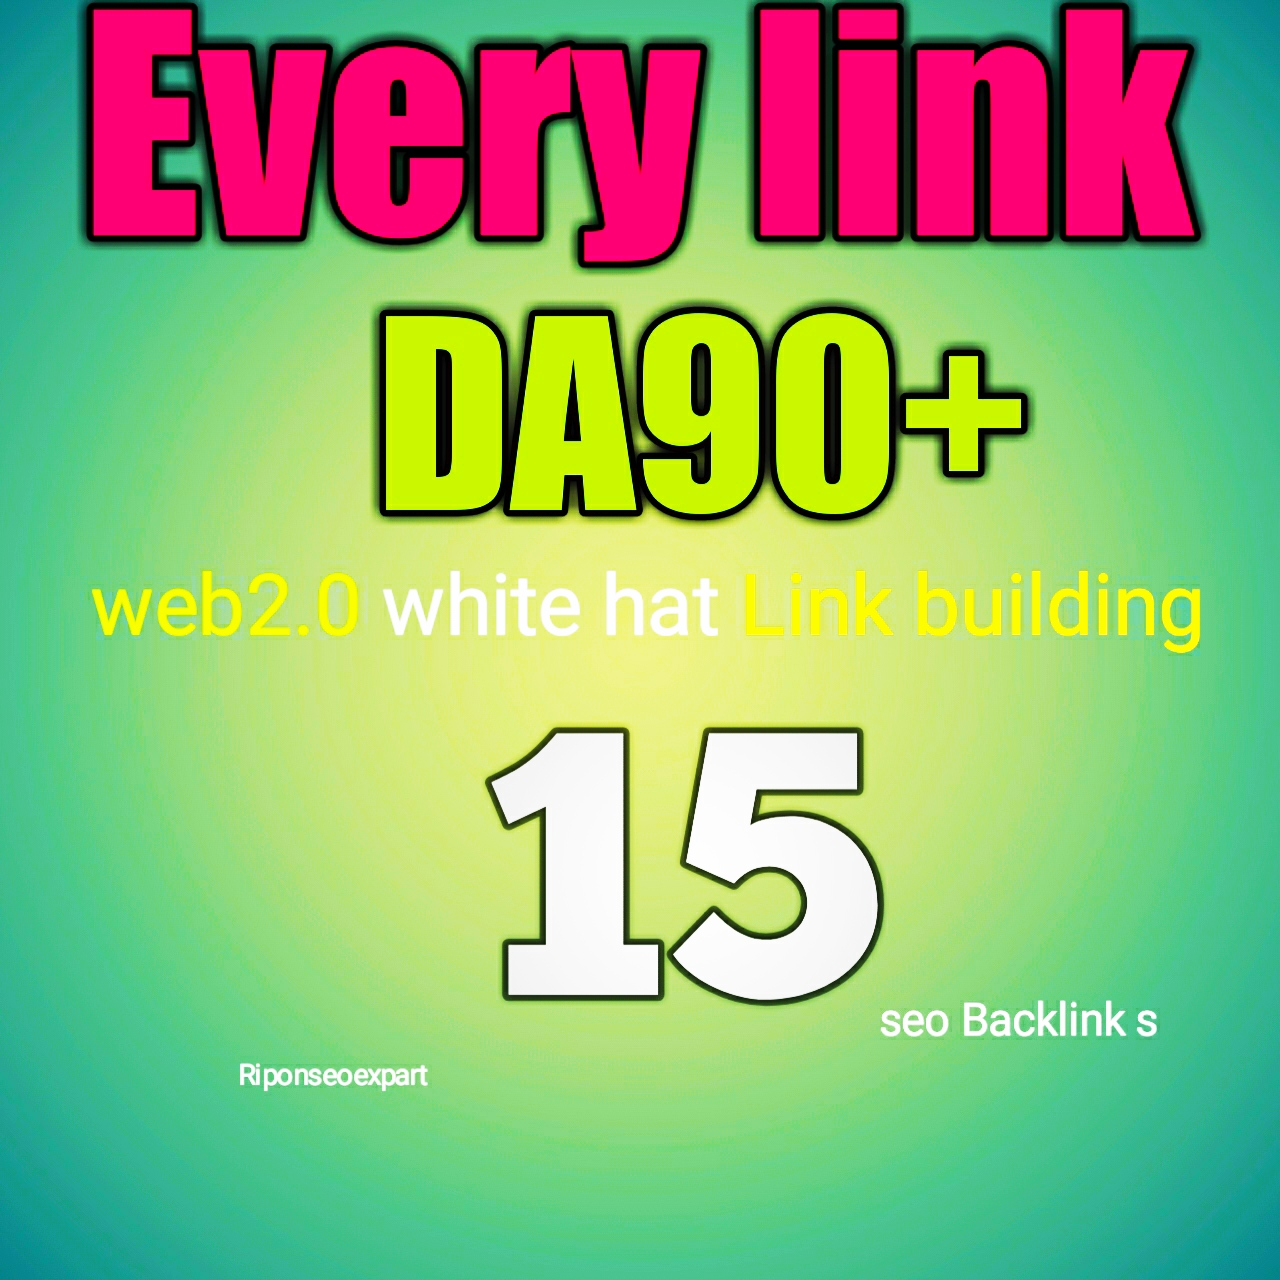 Web2.0 DA90+ Do follow 15 backlinks white hat link building service for top ranking